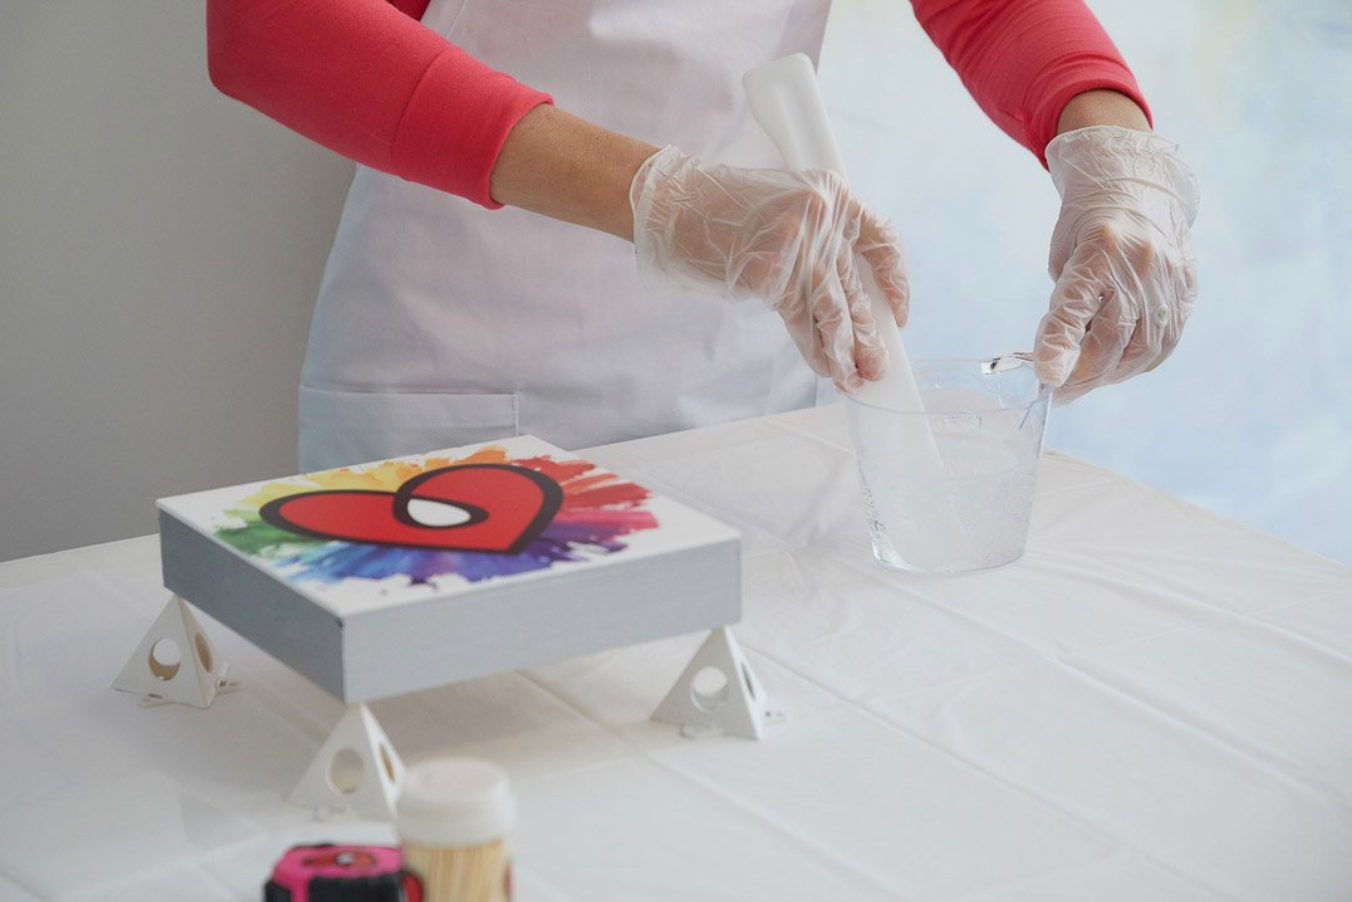 wear an apron when you resin to protect your clothes